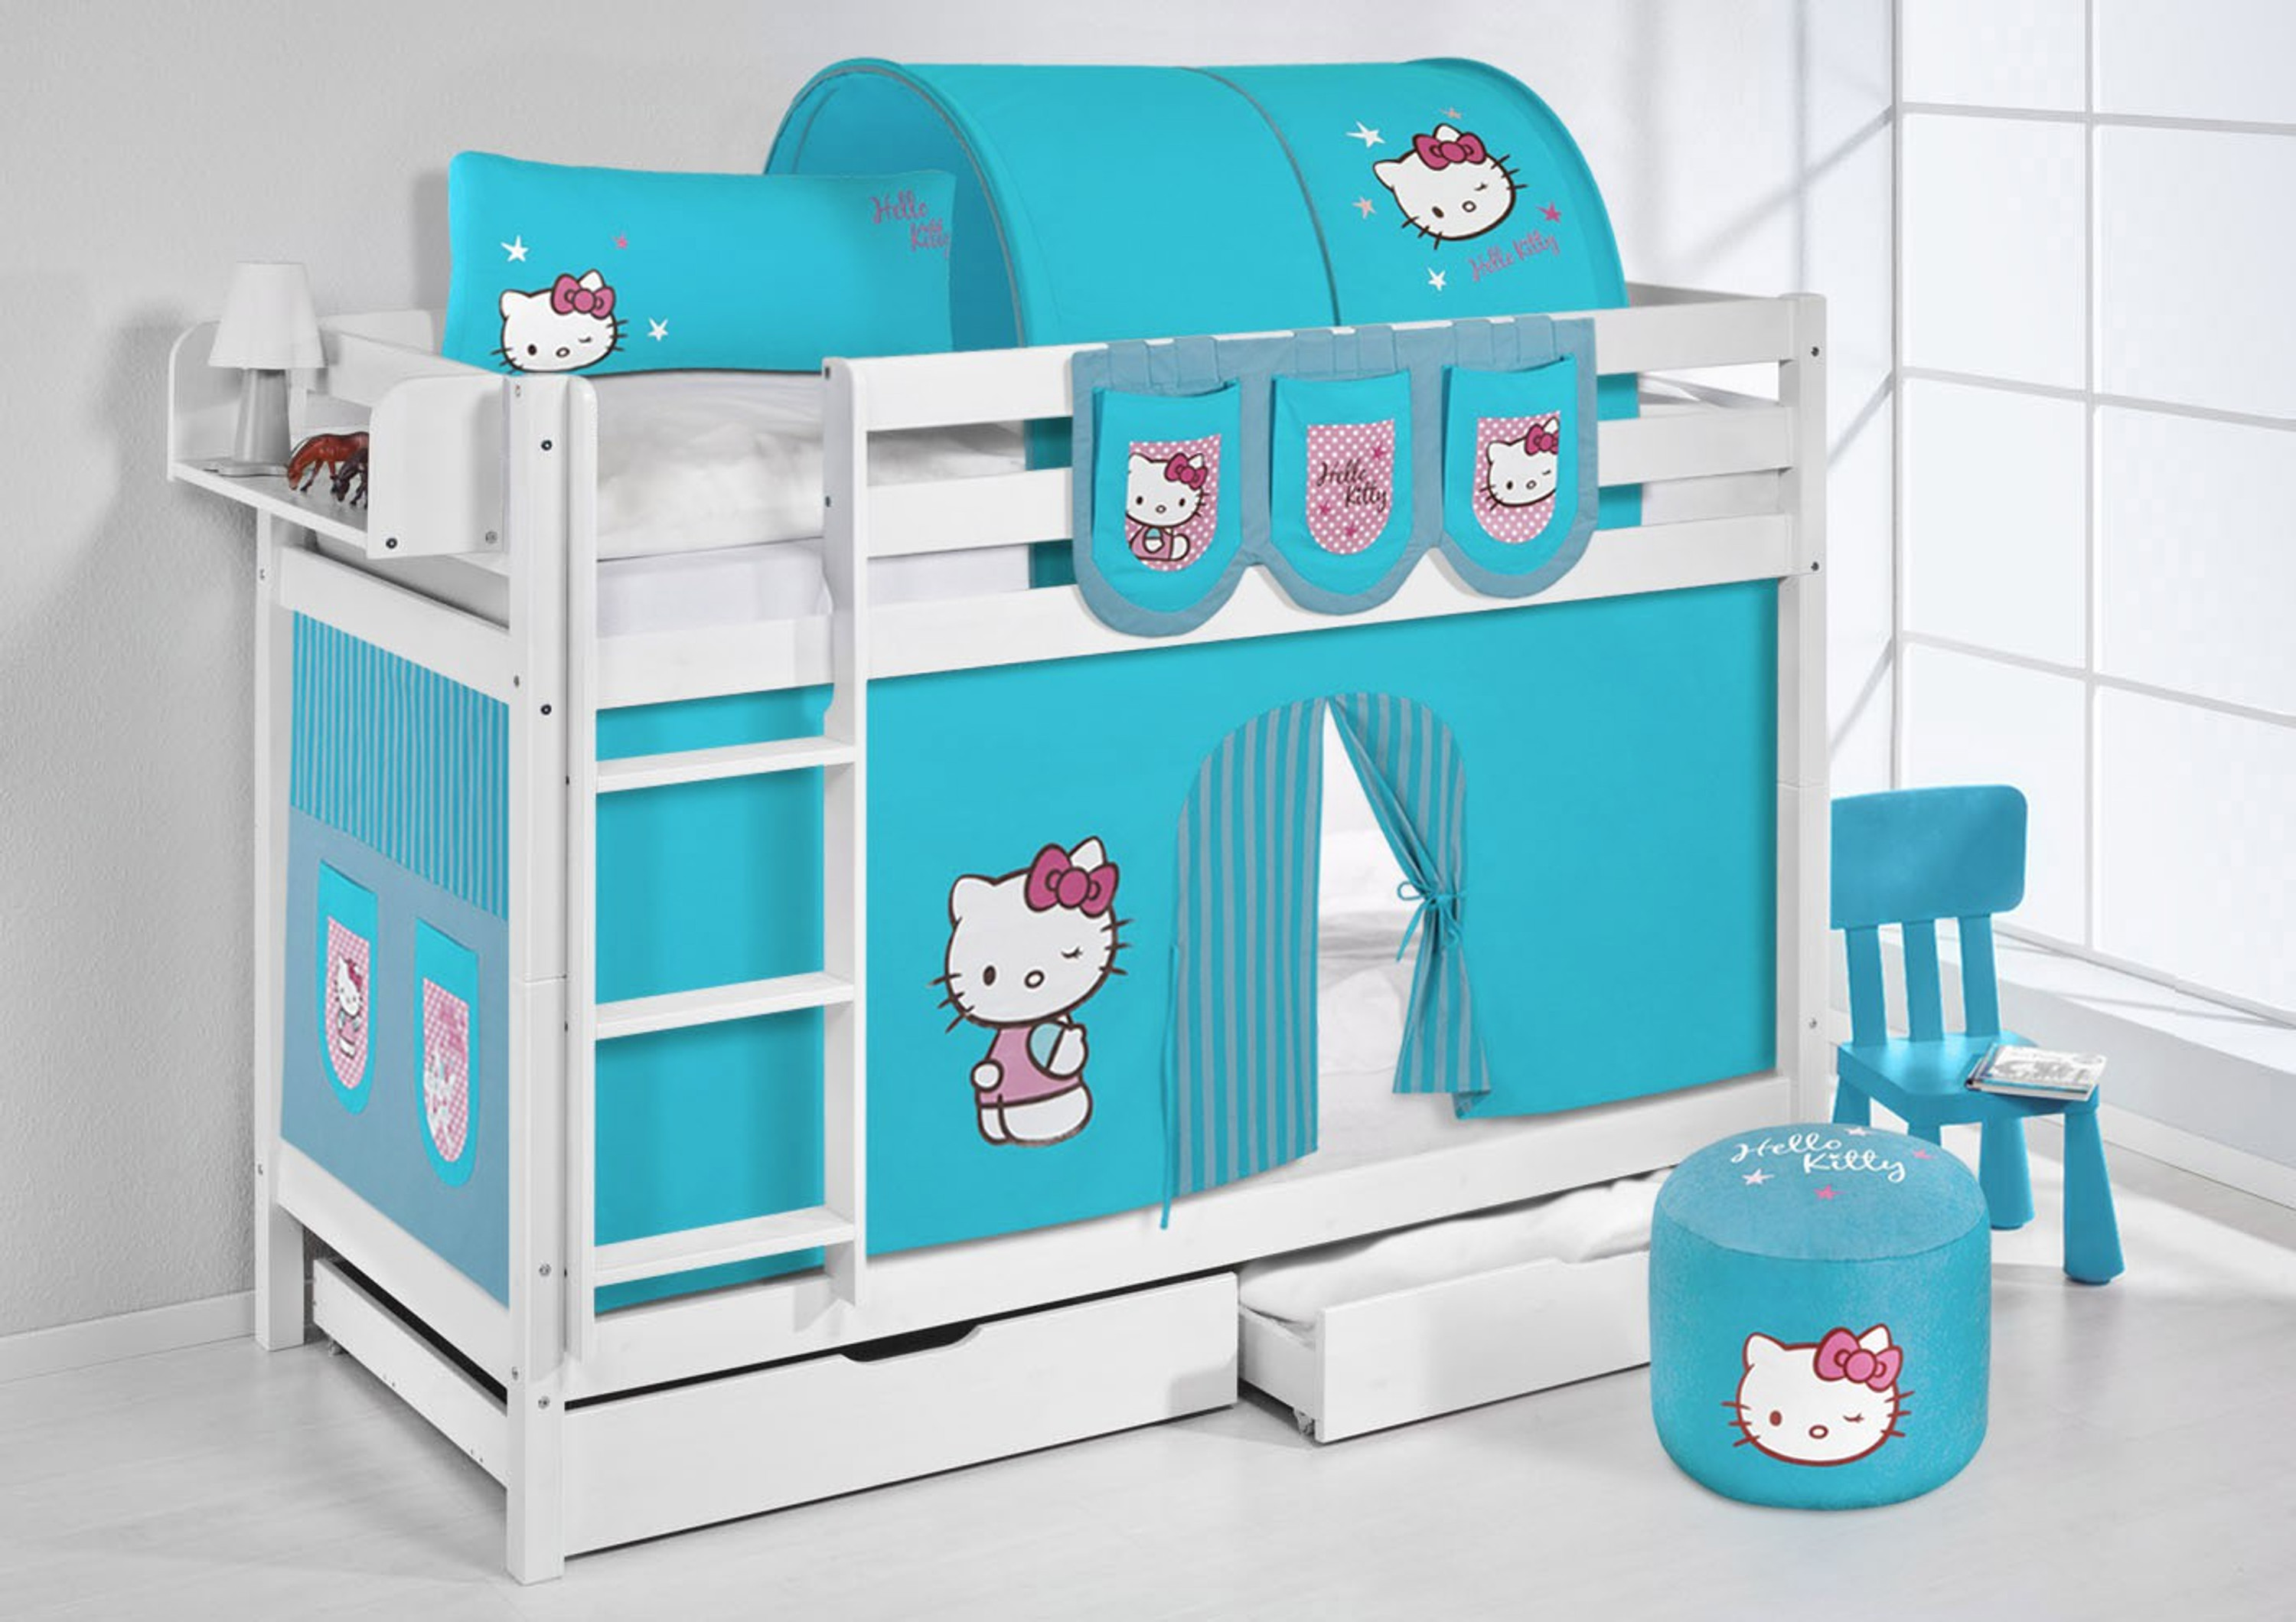 etagenbett hello kitty t rkis wei mit vorhang und. Black Bedroom Furniture Sets. Home Design Ideas